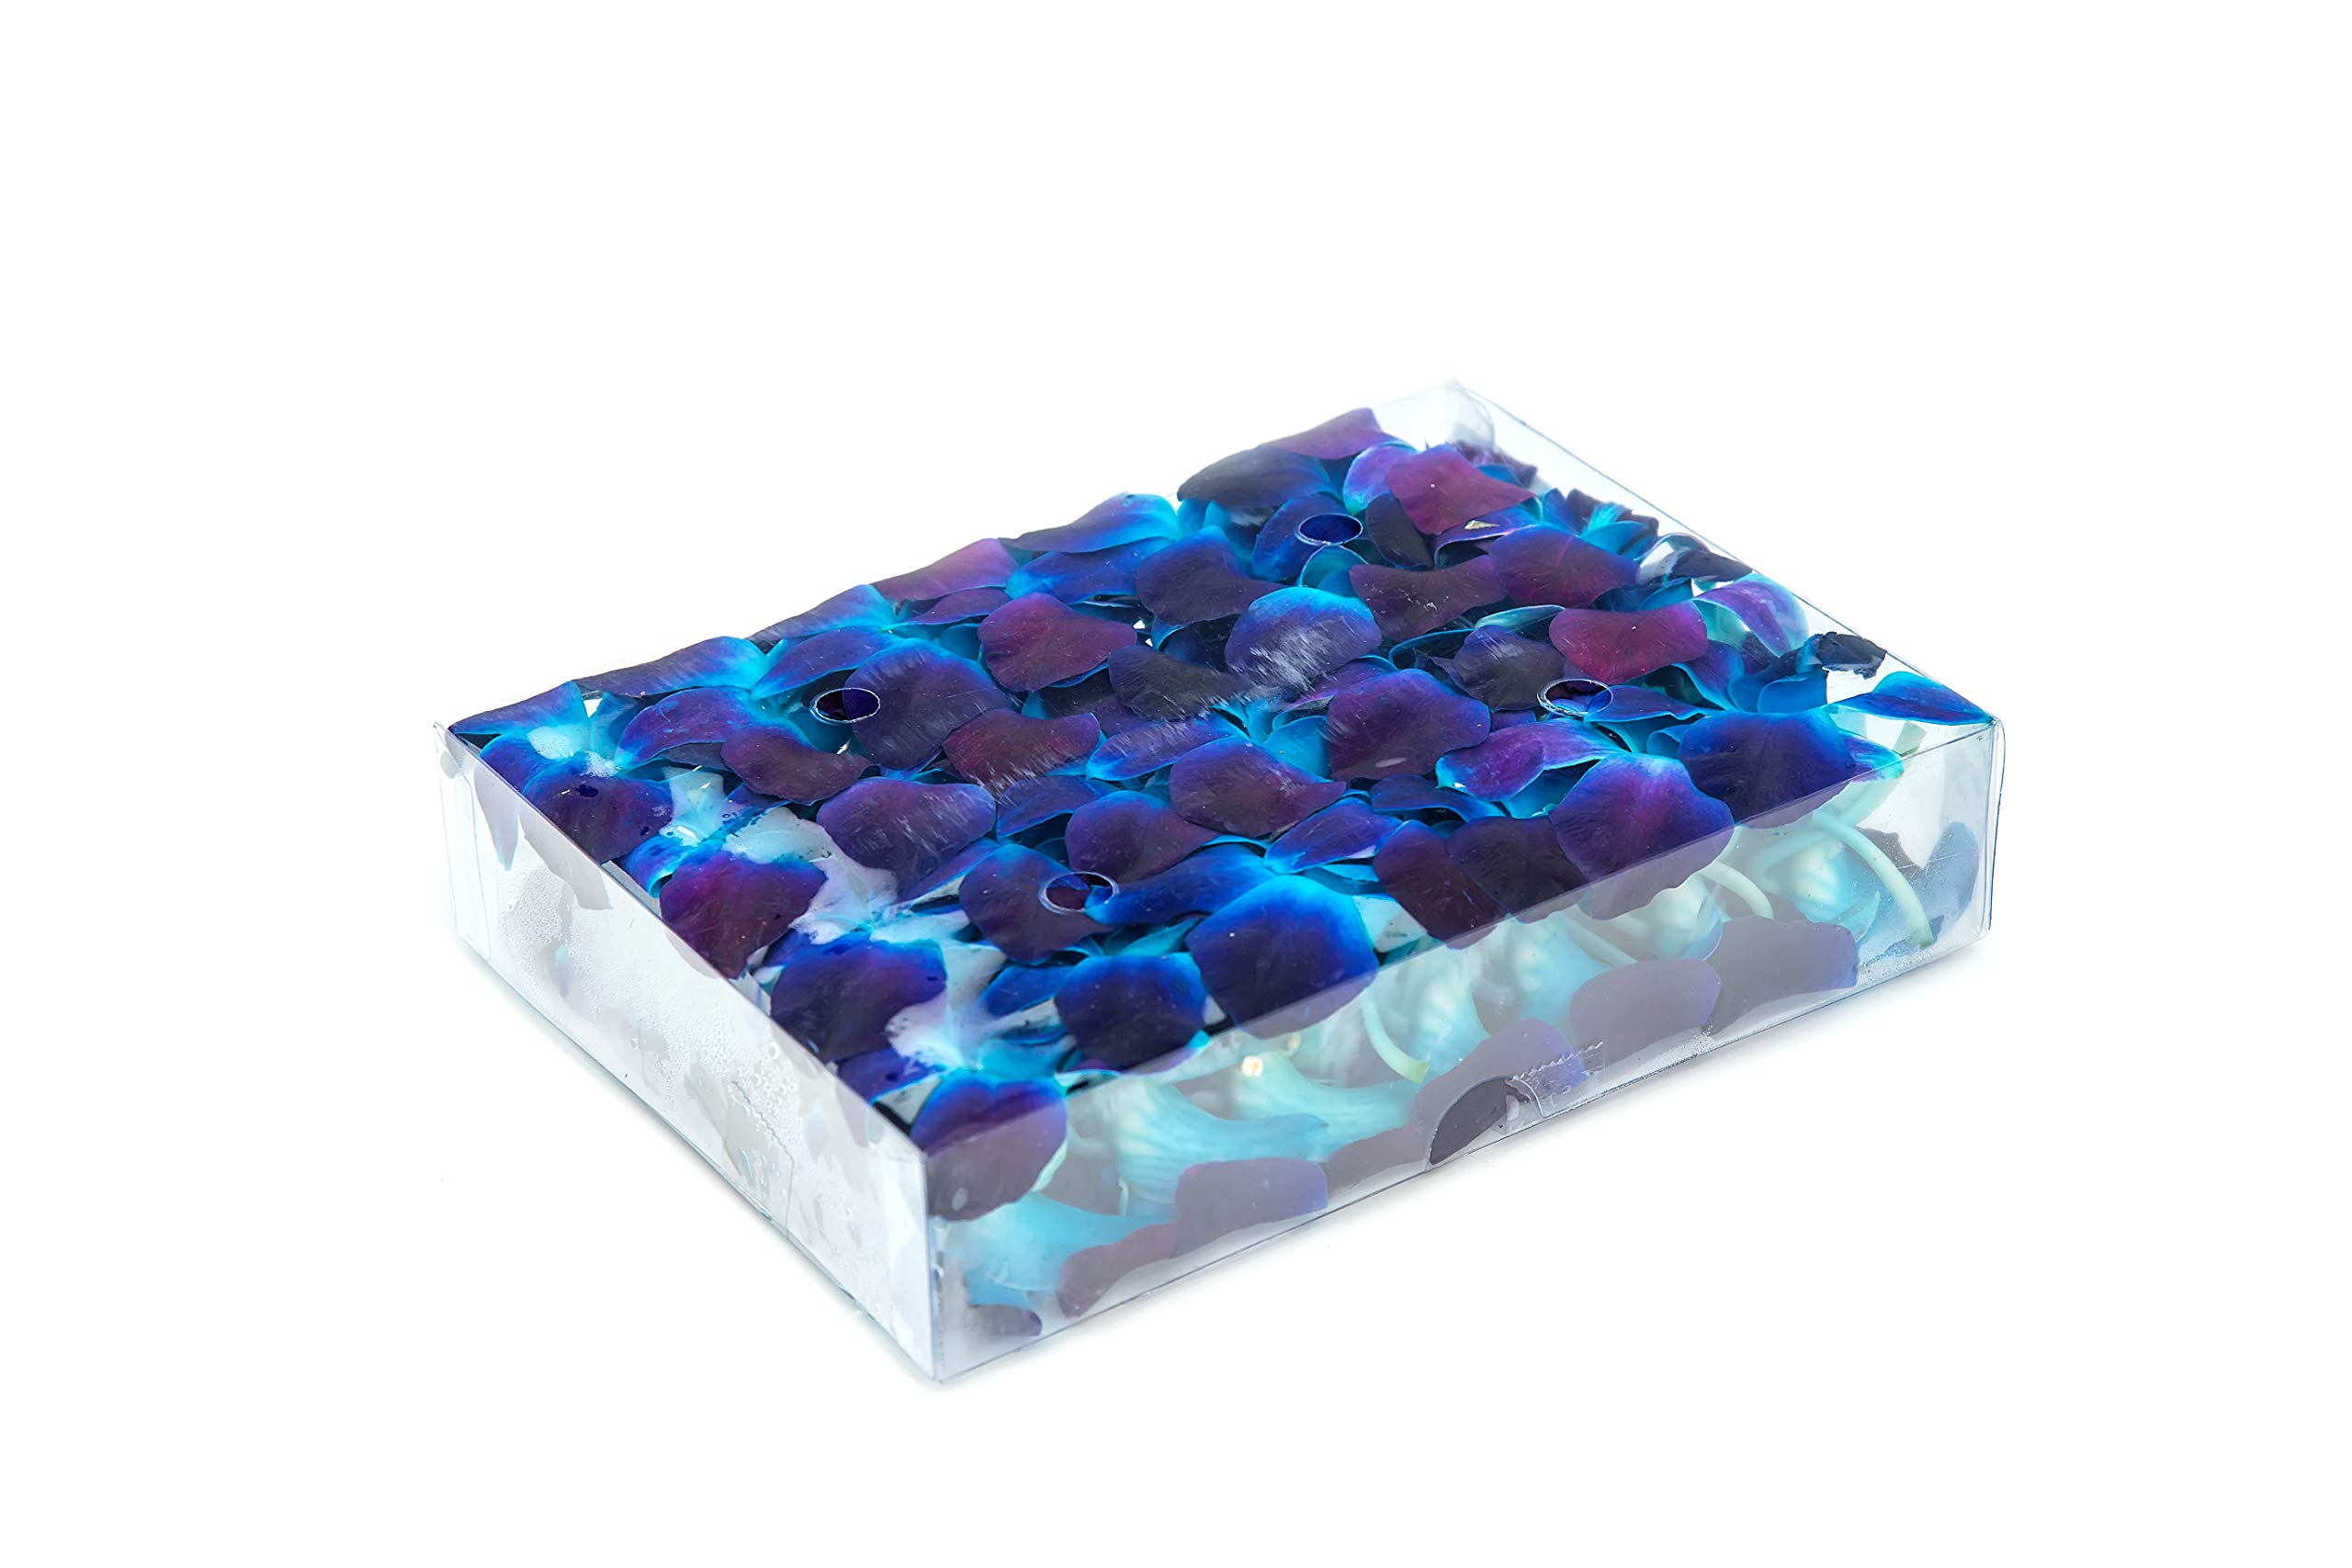 Fresh Dendrobium Orchid Heads Blooms (50 Pieces/Box) - Blue Tinted Sonnia by Collection by Tiffany (Image #1)